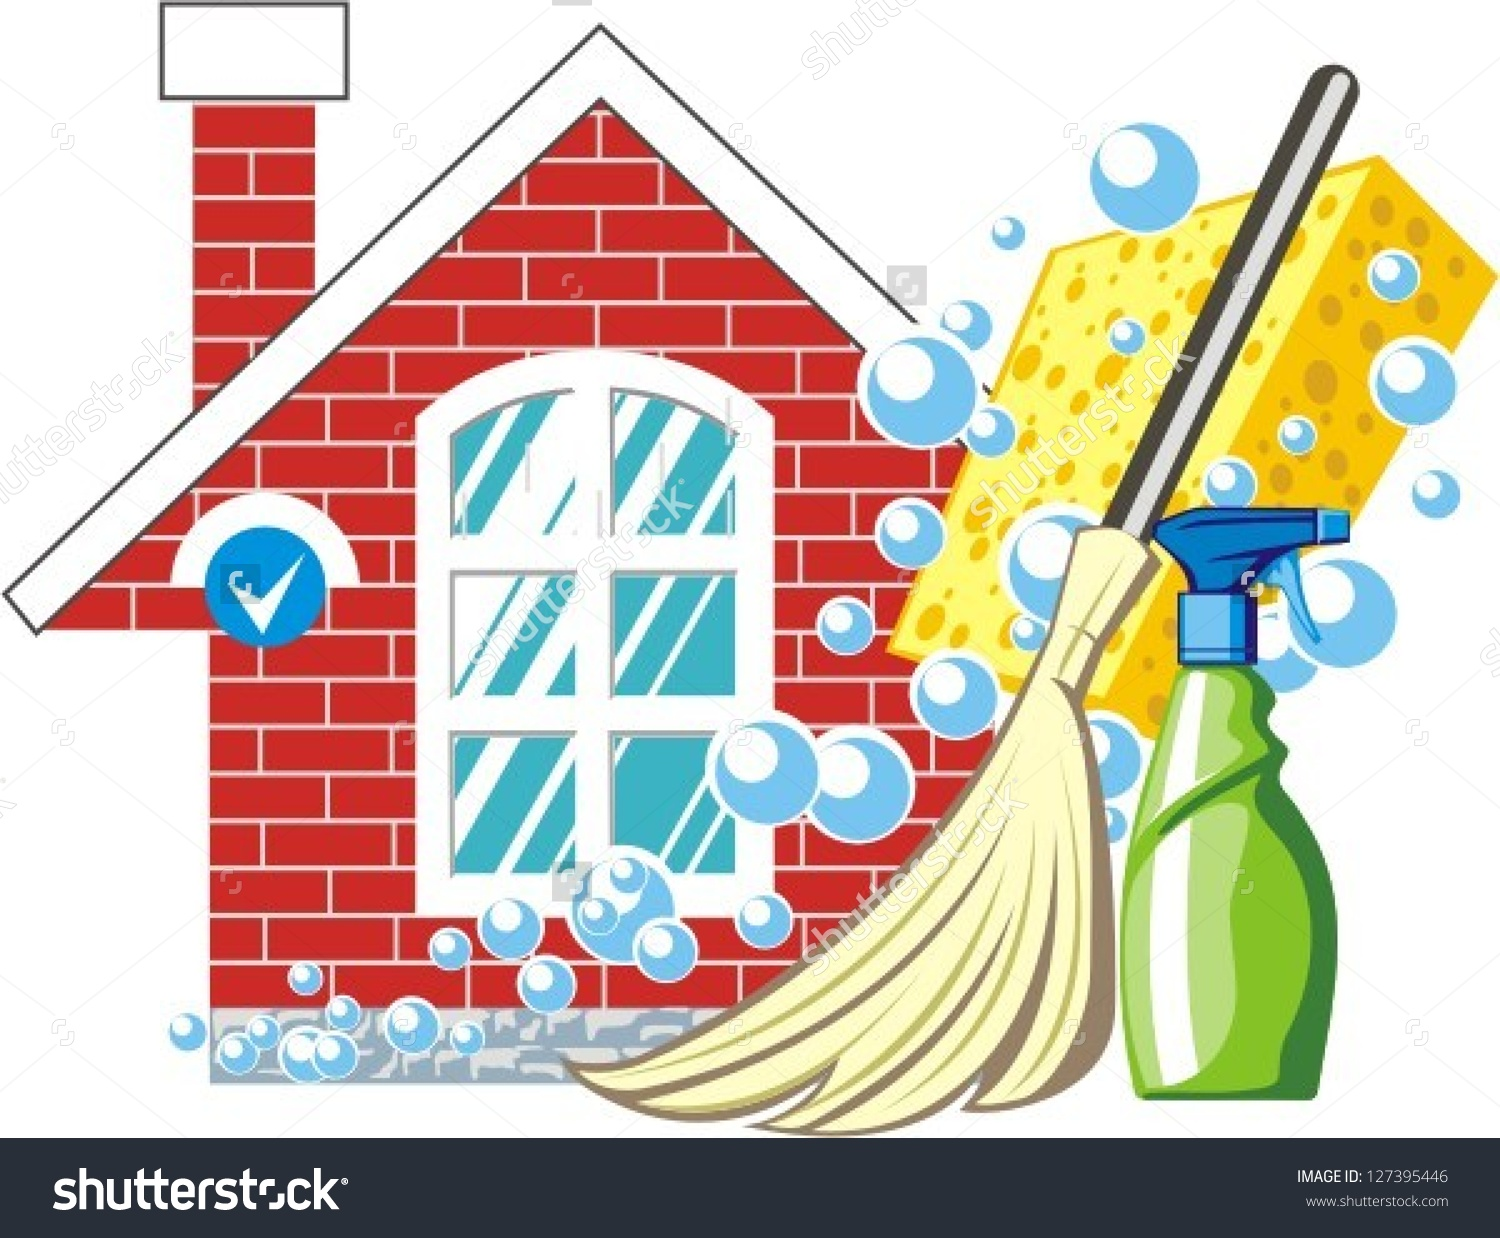 Cleaning clip art vector.